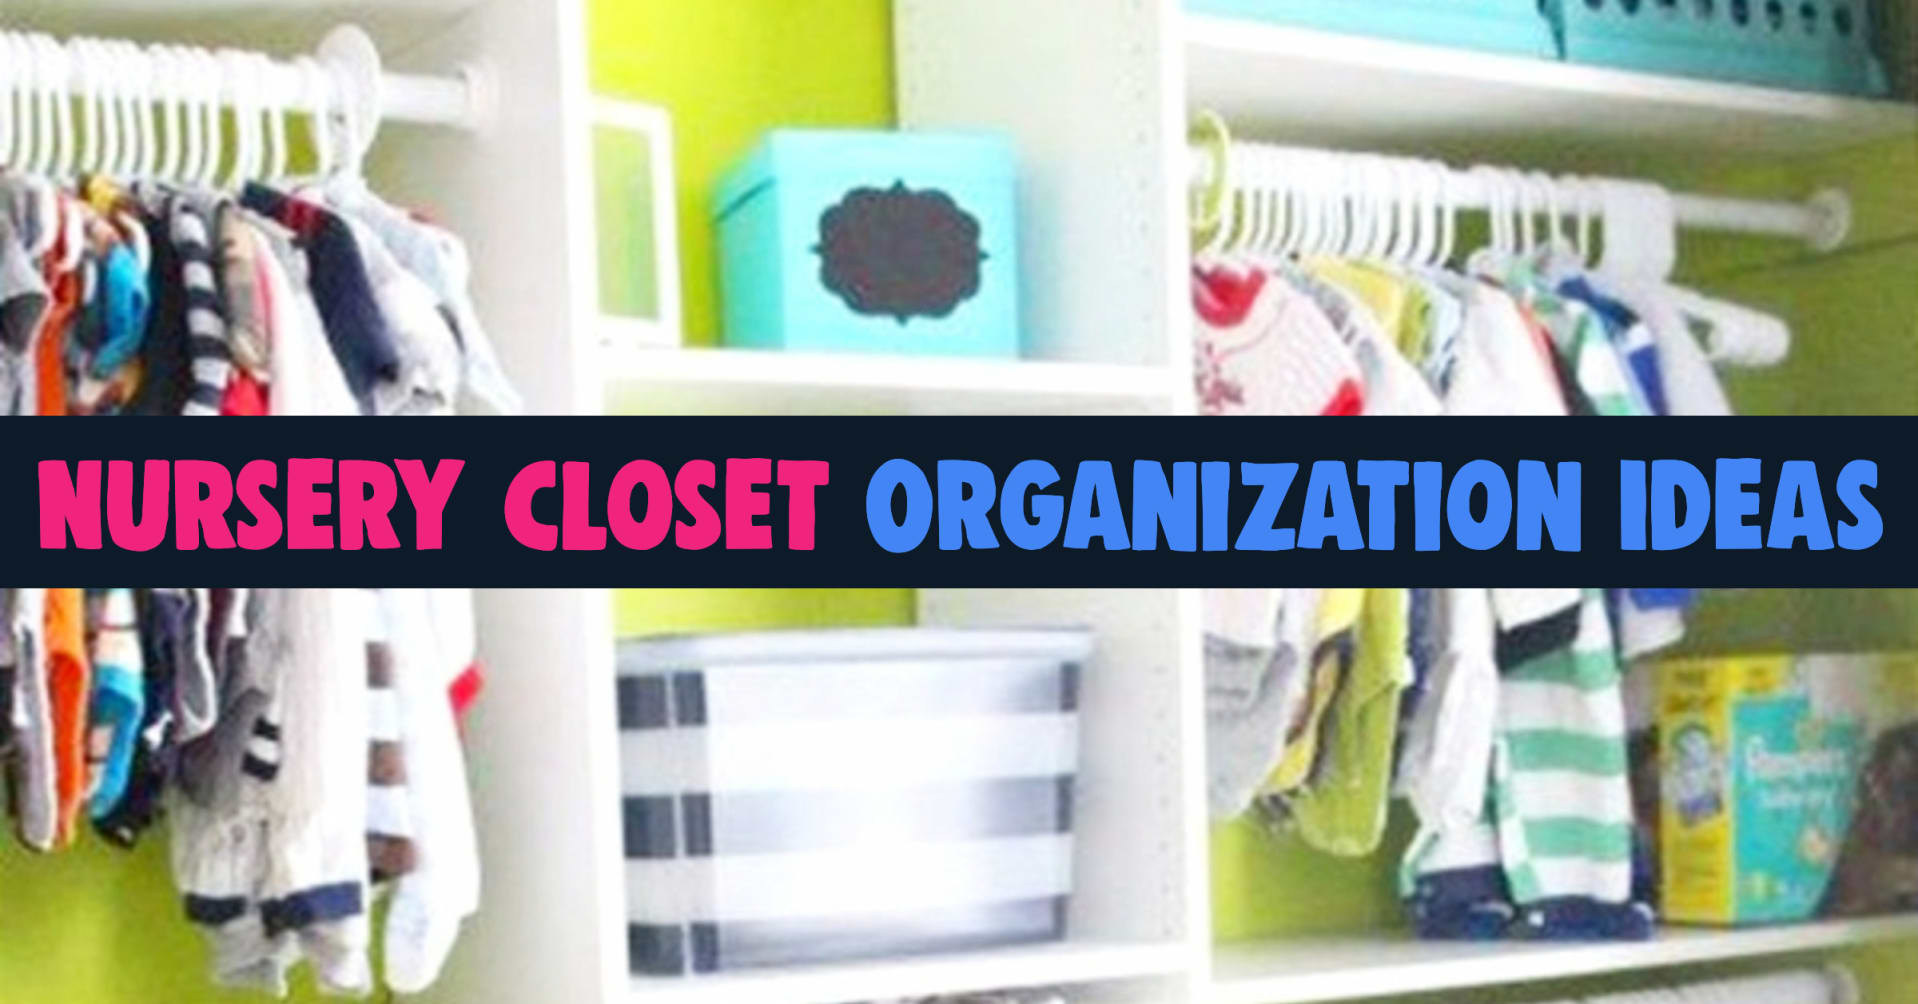 Nursery closet organization ideas - cleaver ways to organize the baby room closet with closet organizers and organization hacks for small closets